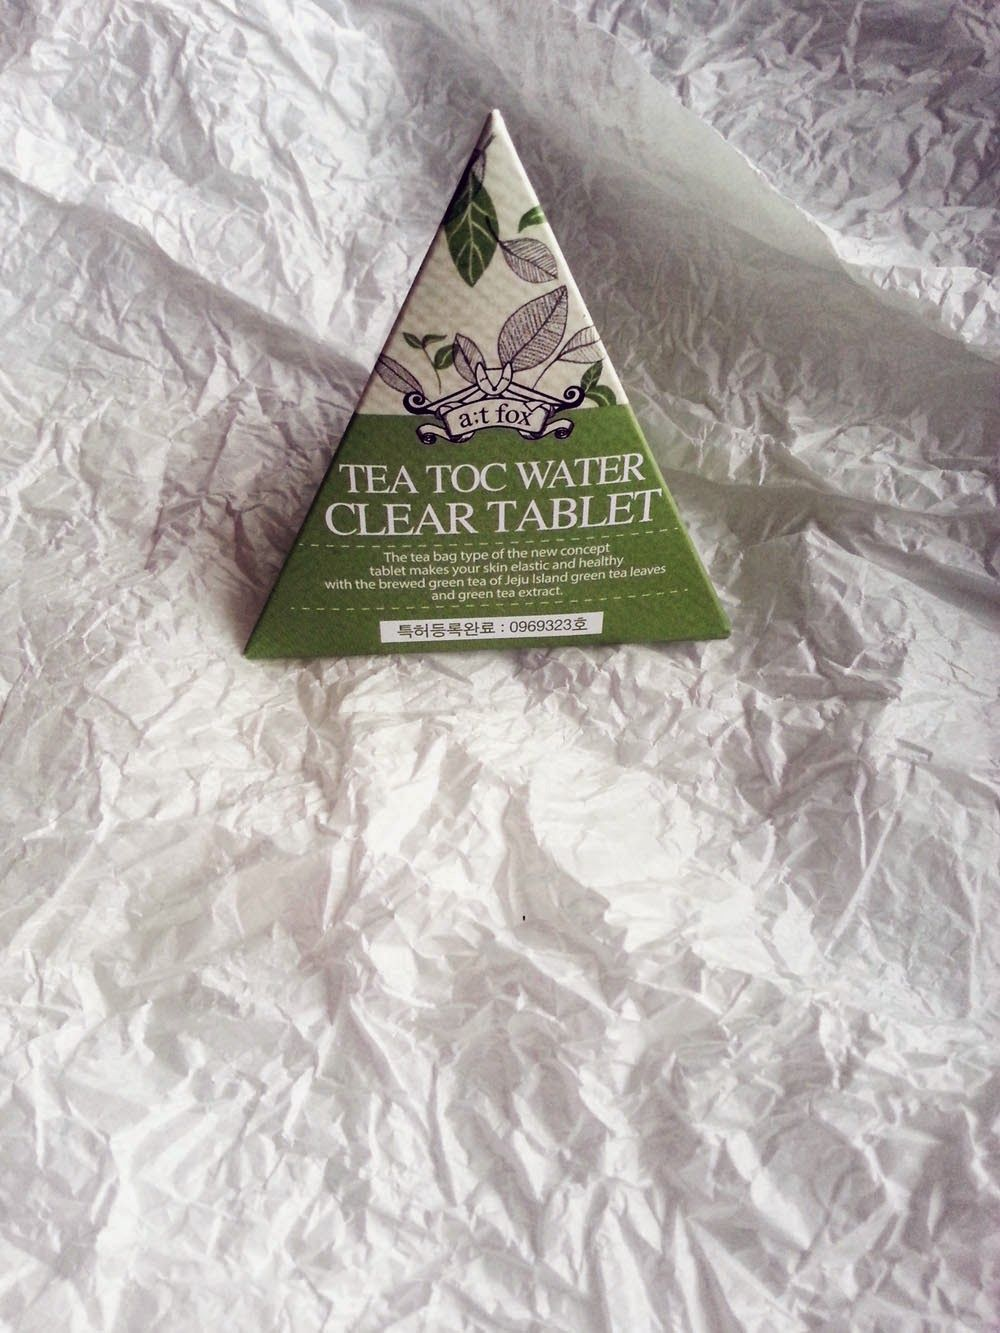 A;T FOX Tea Tox Water Clear Tablet